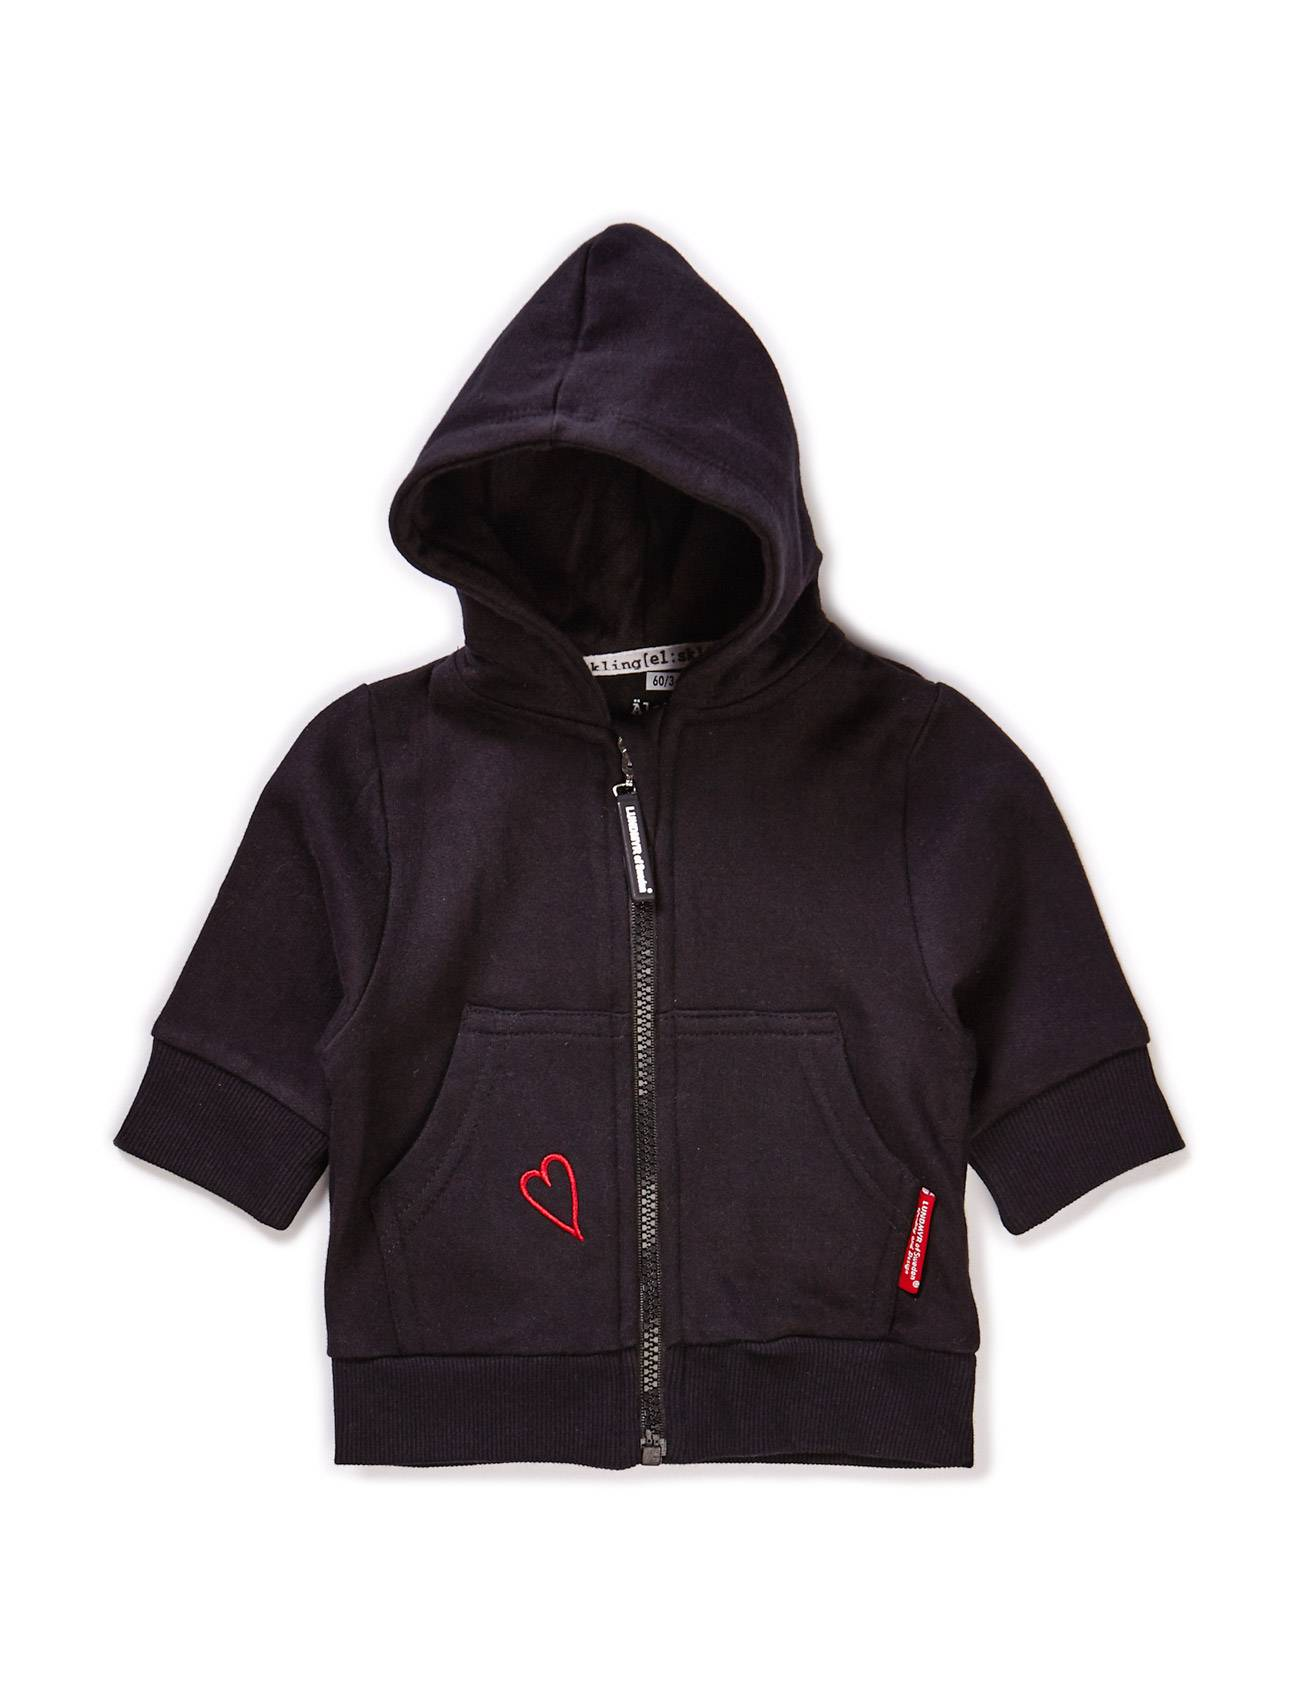 Lundmyr Hooded Jacket